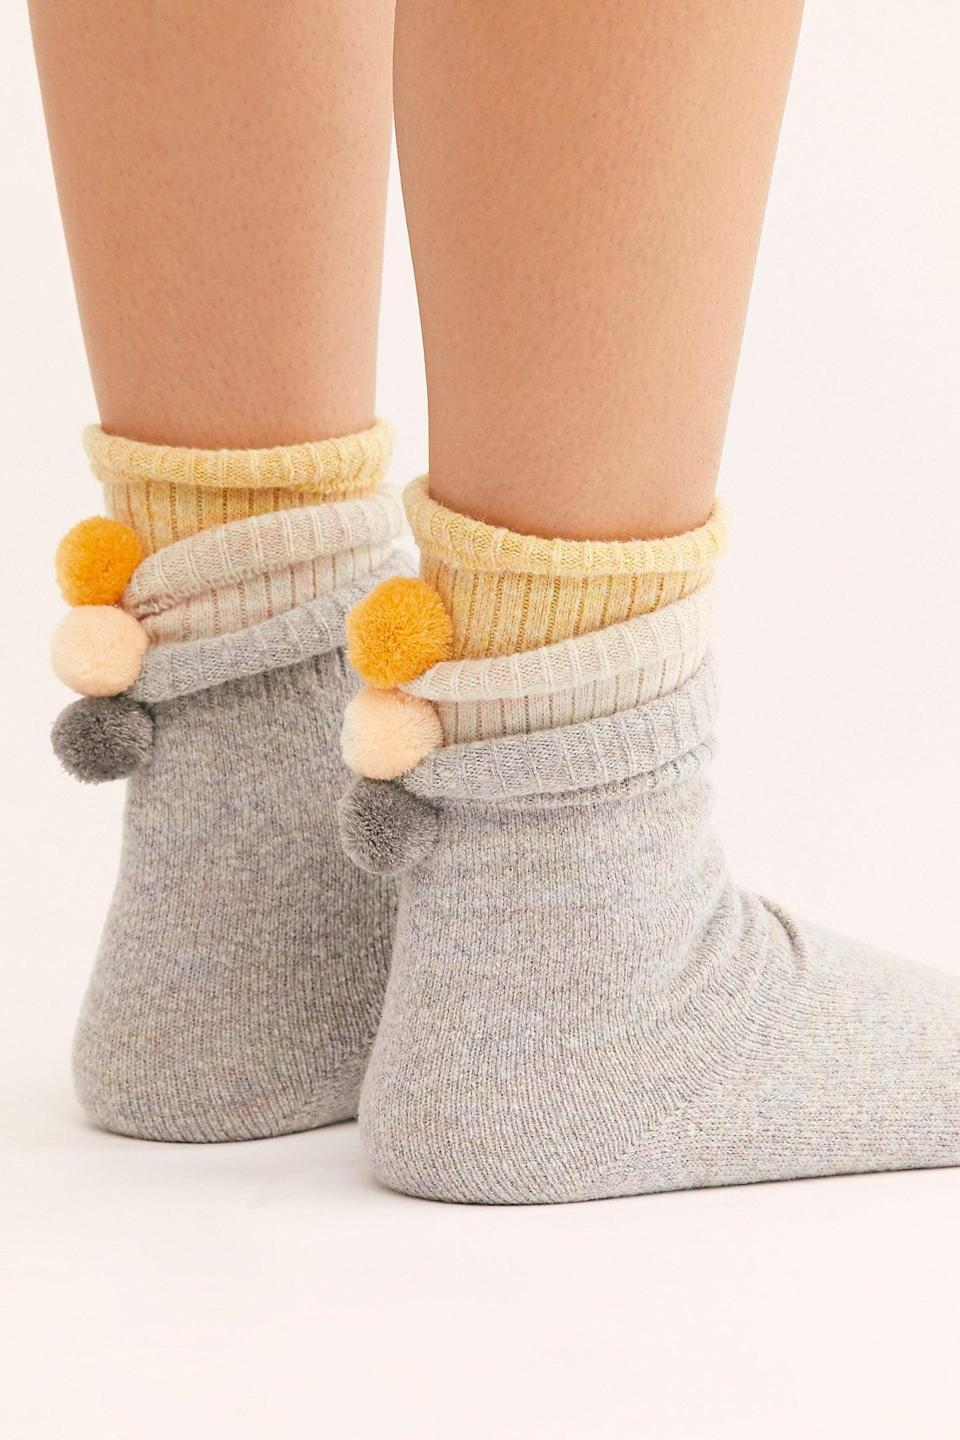 """<p>We want these <a href=""""https://www.popsugar.com/buy/Nat-Pom-Pom-Crew-Socks-524365?p_name=Nat%20Pom%20Pom%20Crew%20Socks&retailer=freepeople.com&pid=524365&price=28&evar1=fab%3Aus&evar9=45460327&evar98=https%3A%2F%2Fwww.popsugar.com%2Fphoto-gallery%2F45460327%2Fimage%2F46977958%2FNat-Pom-Pom-Crew-Socks&list1=shopping%2Cgifts%2Cfree%20people%2Choliday%2Cgift%20guide%2Cgifts%20for%20women&prop13=api&pdata=1"""" class=""""link rapid-noclick-resp"""" rel=""""nofollow noopener"""" target=""""_blank"""" data-ylk=""""slk:Nat Pom Pom Crew Socks"""">Nat Pom Pom Crew Socks</a> ($28) for ourselves.</p>"""